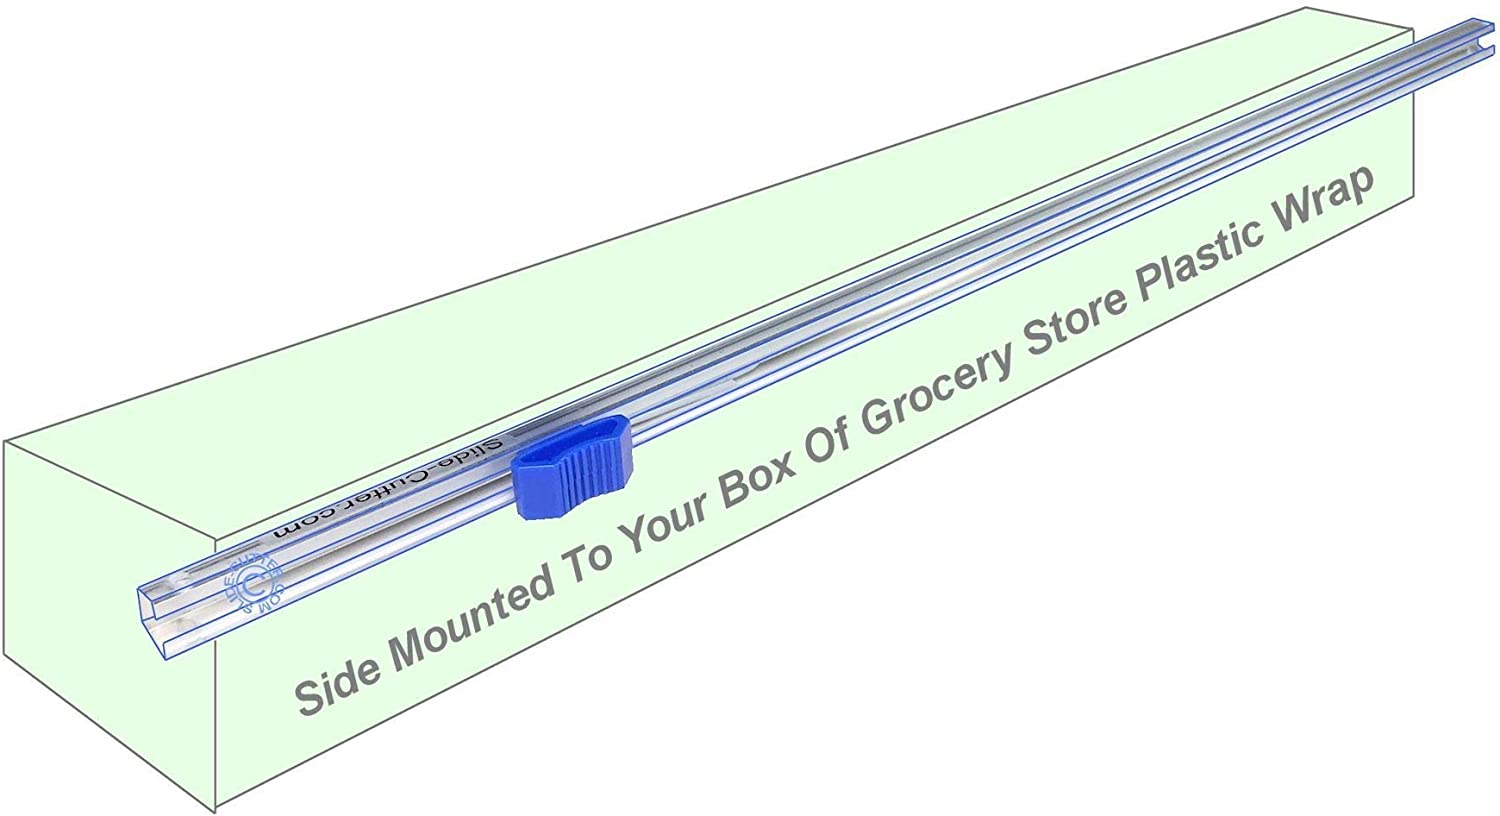 49.5cm Long Slide Replacement Cutter for Kitchen Plastic Wrap